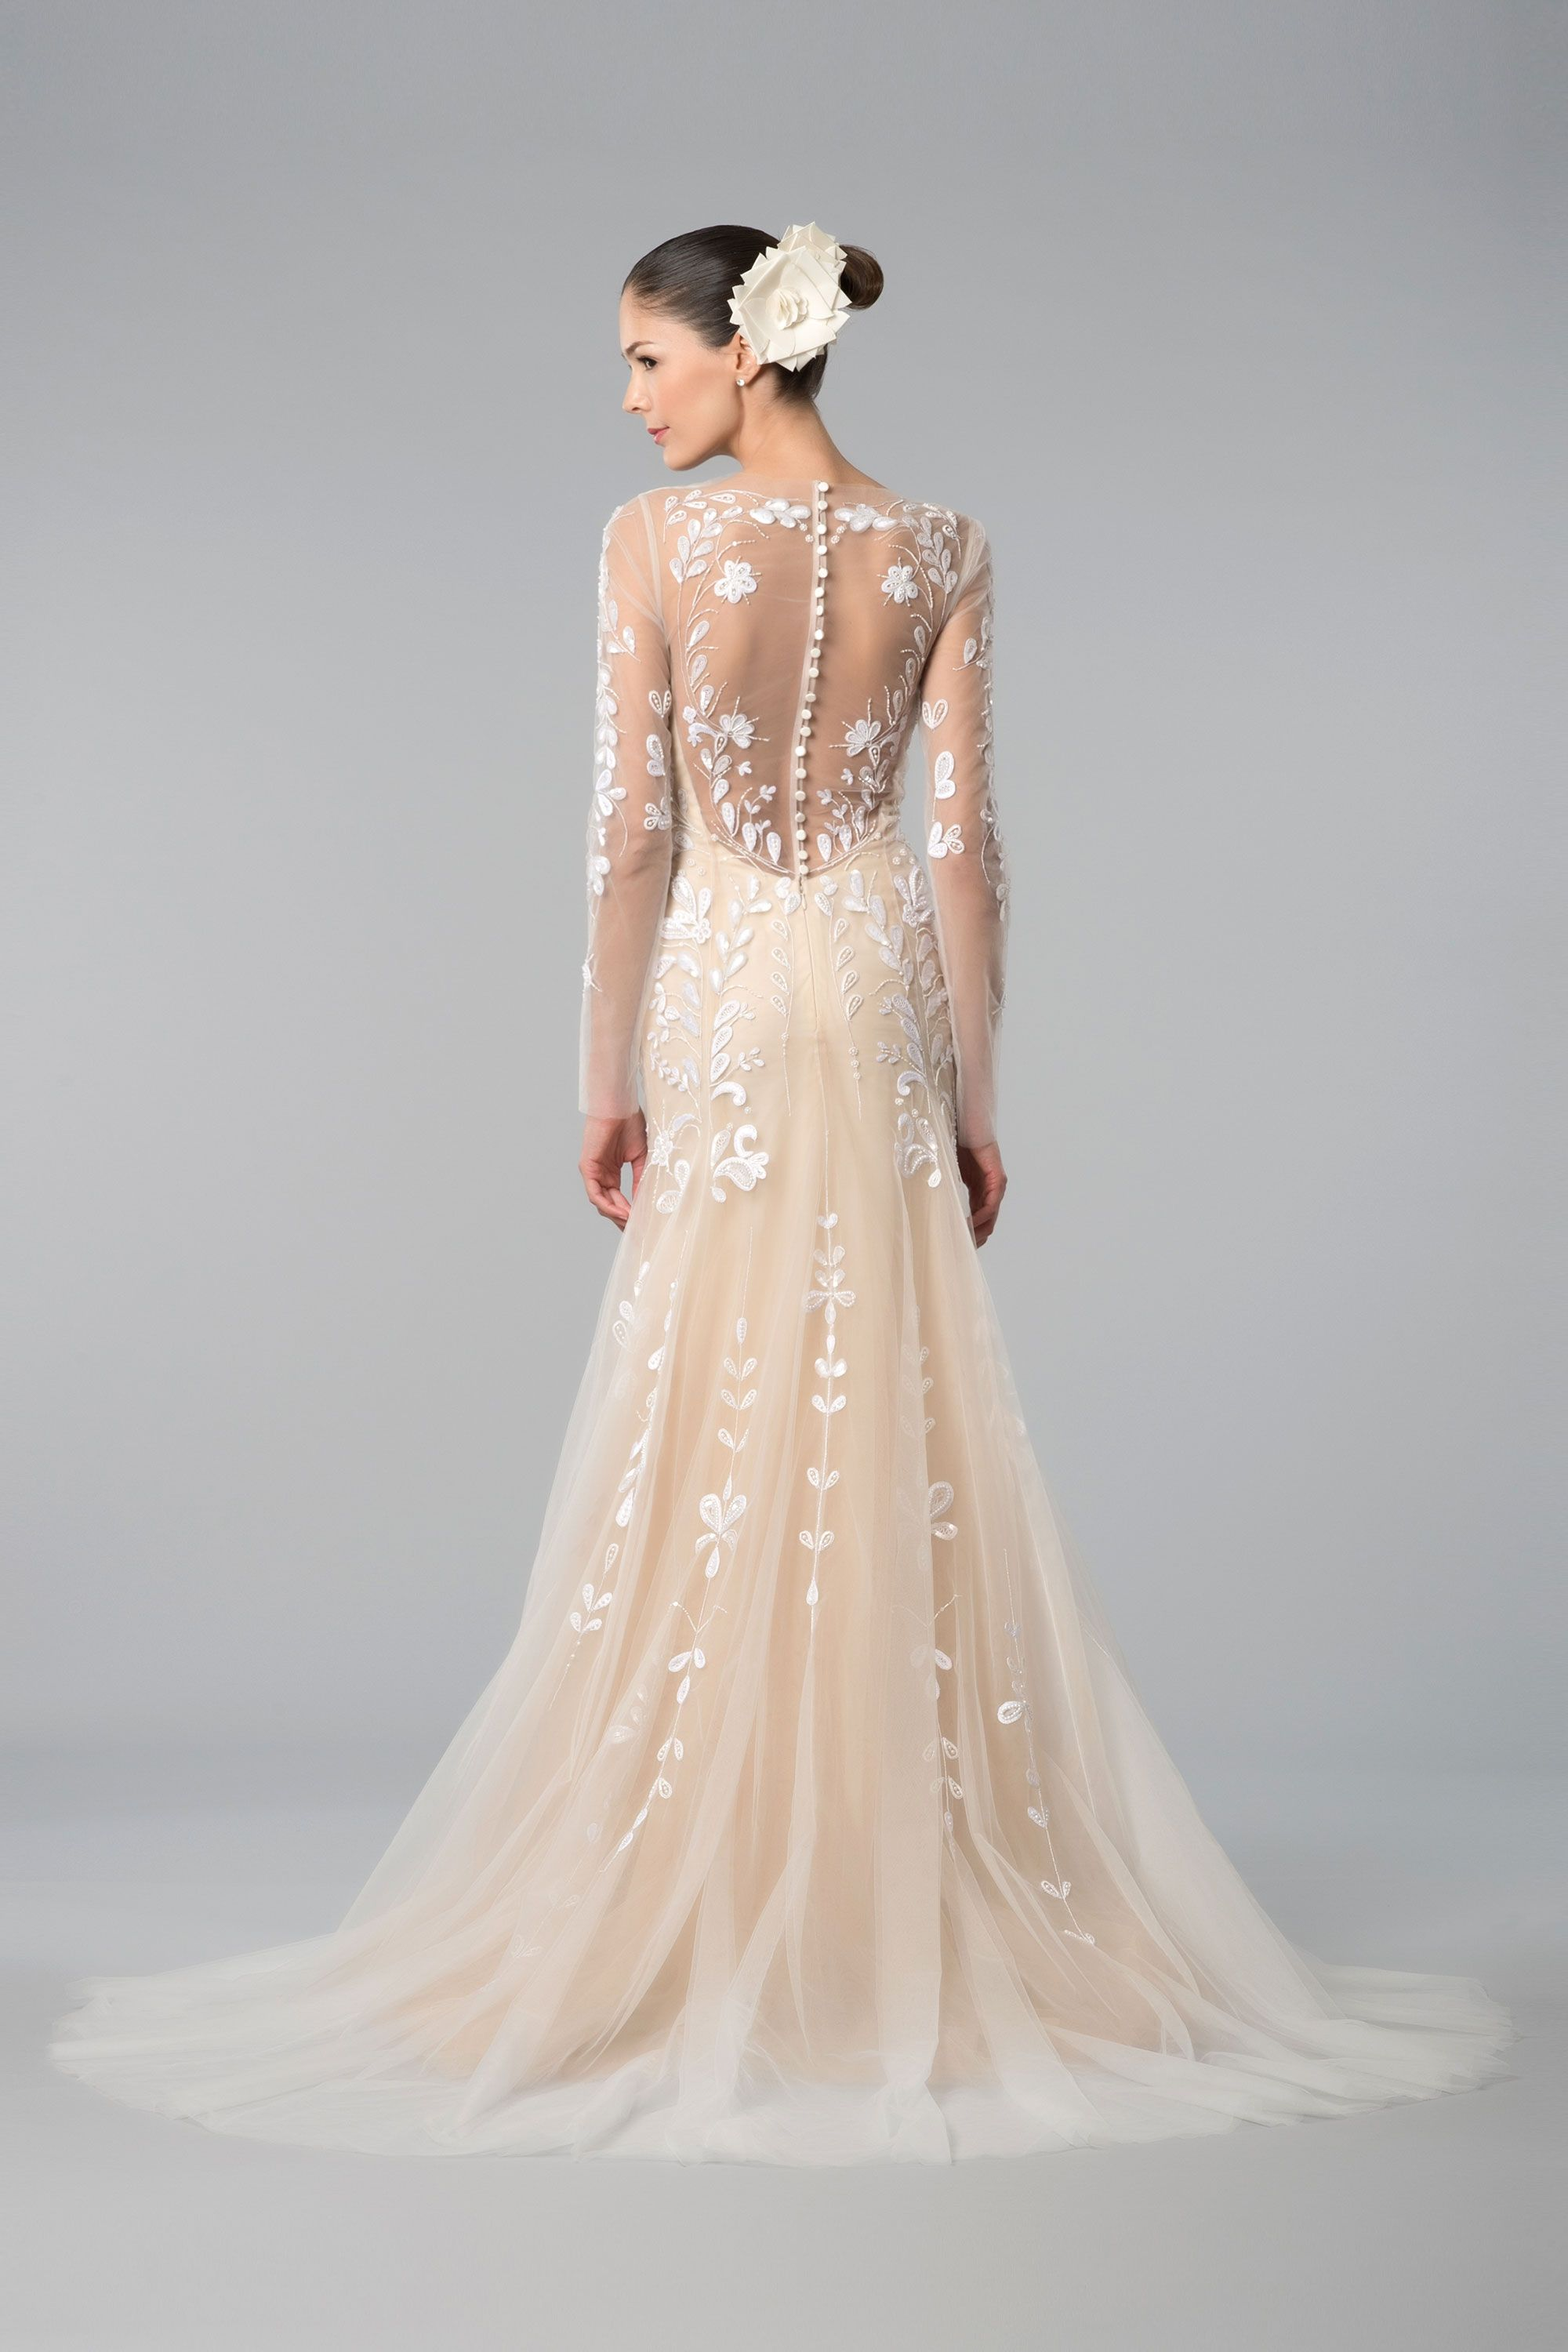 Fall 2015 designer wedding dresses couture wedding dress designers ombrellifo Image collections